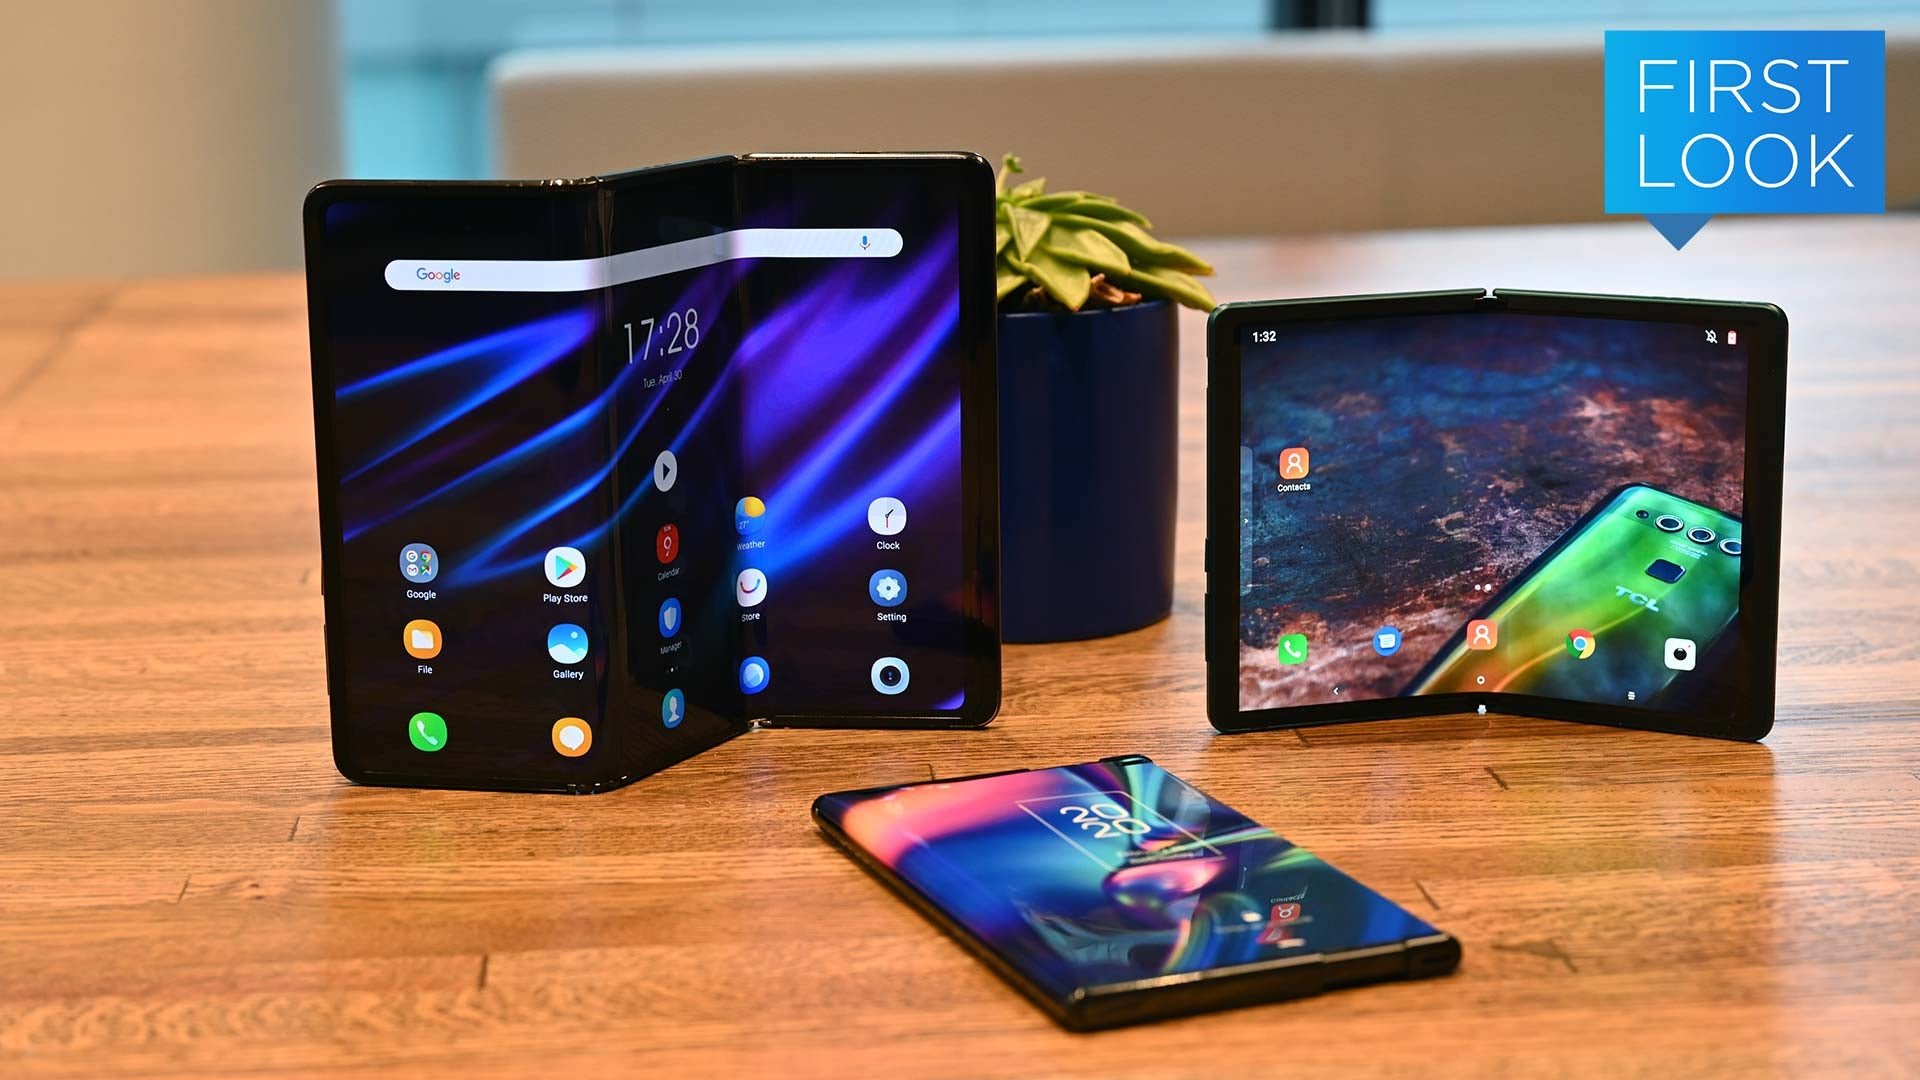 Phones Like These Are Why I'm Still Excited For A Foldable Future